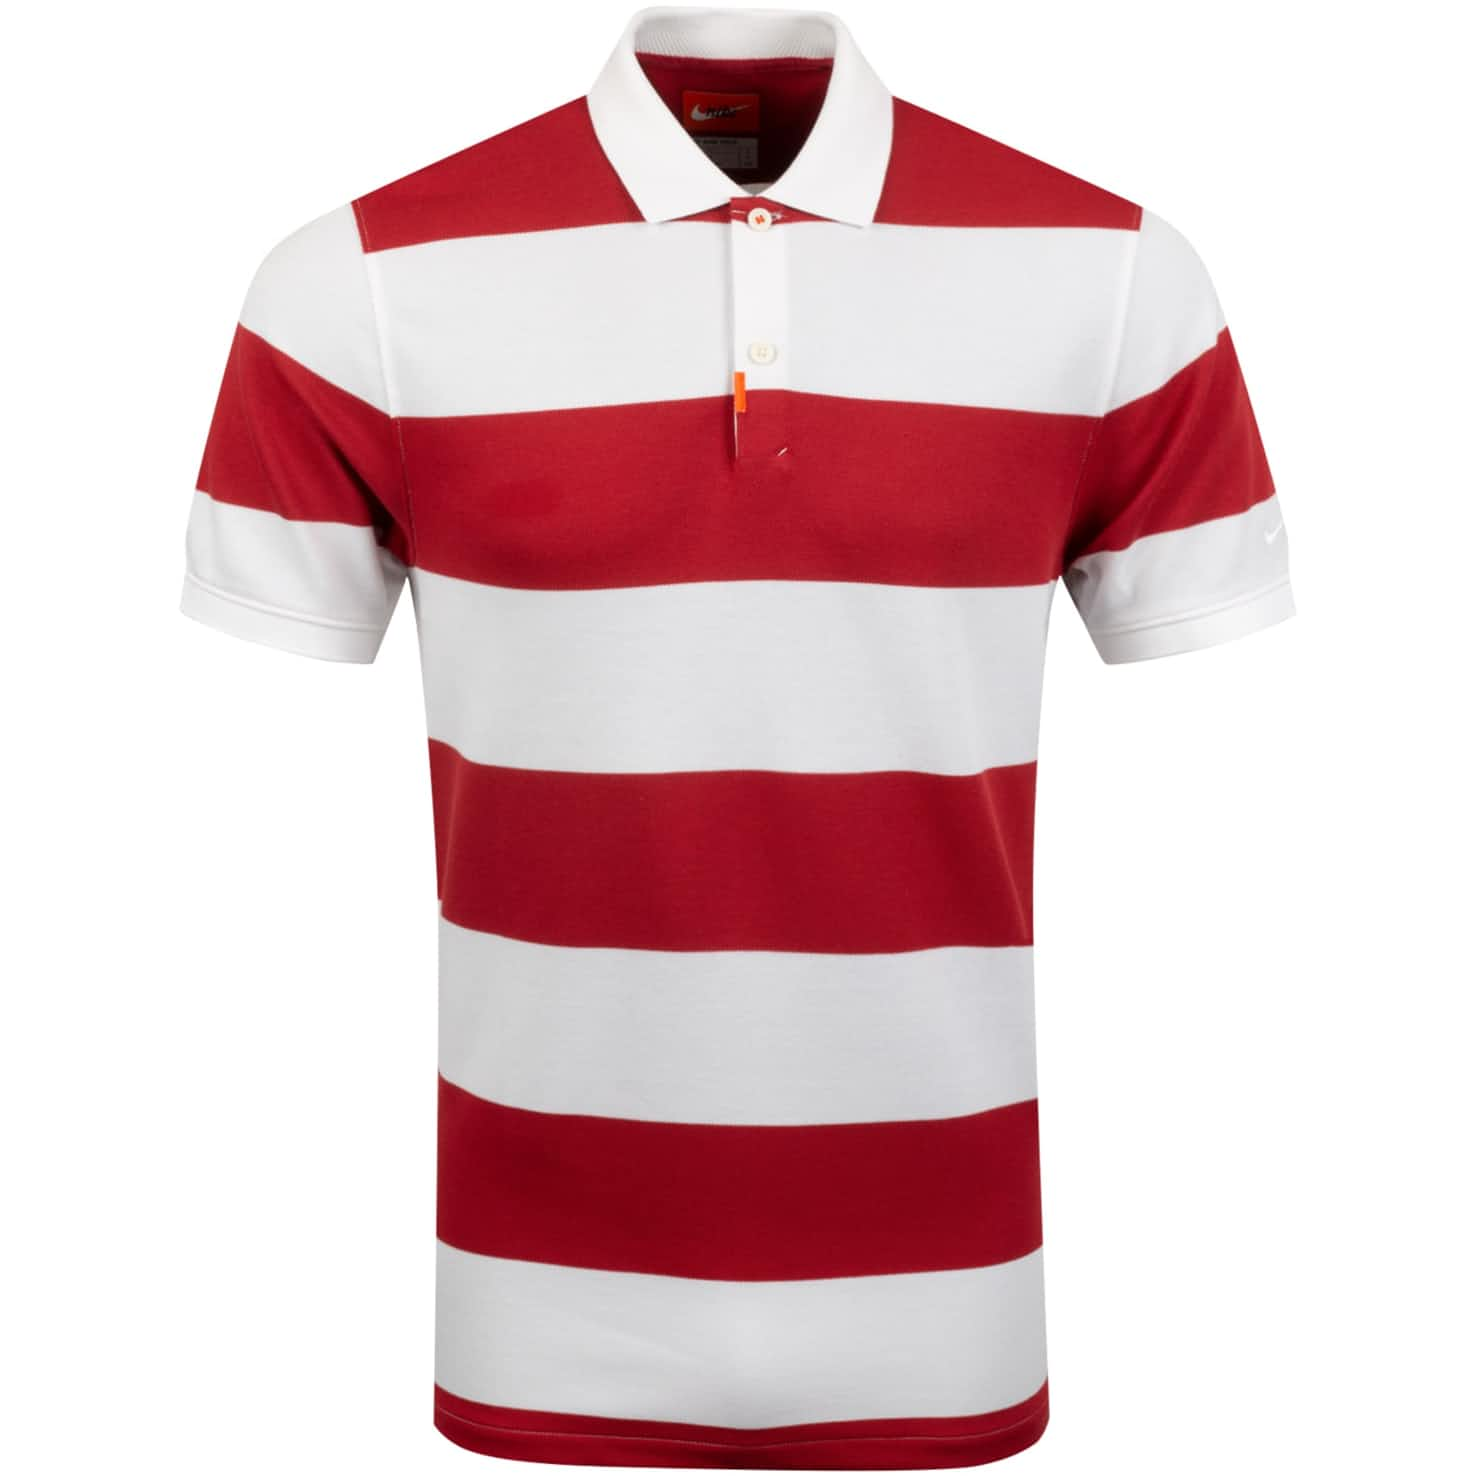 The Golf Slim Stripe Polo Sierra Red/White - SS20